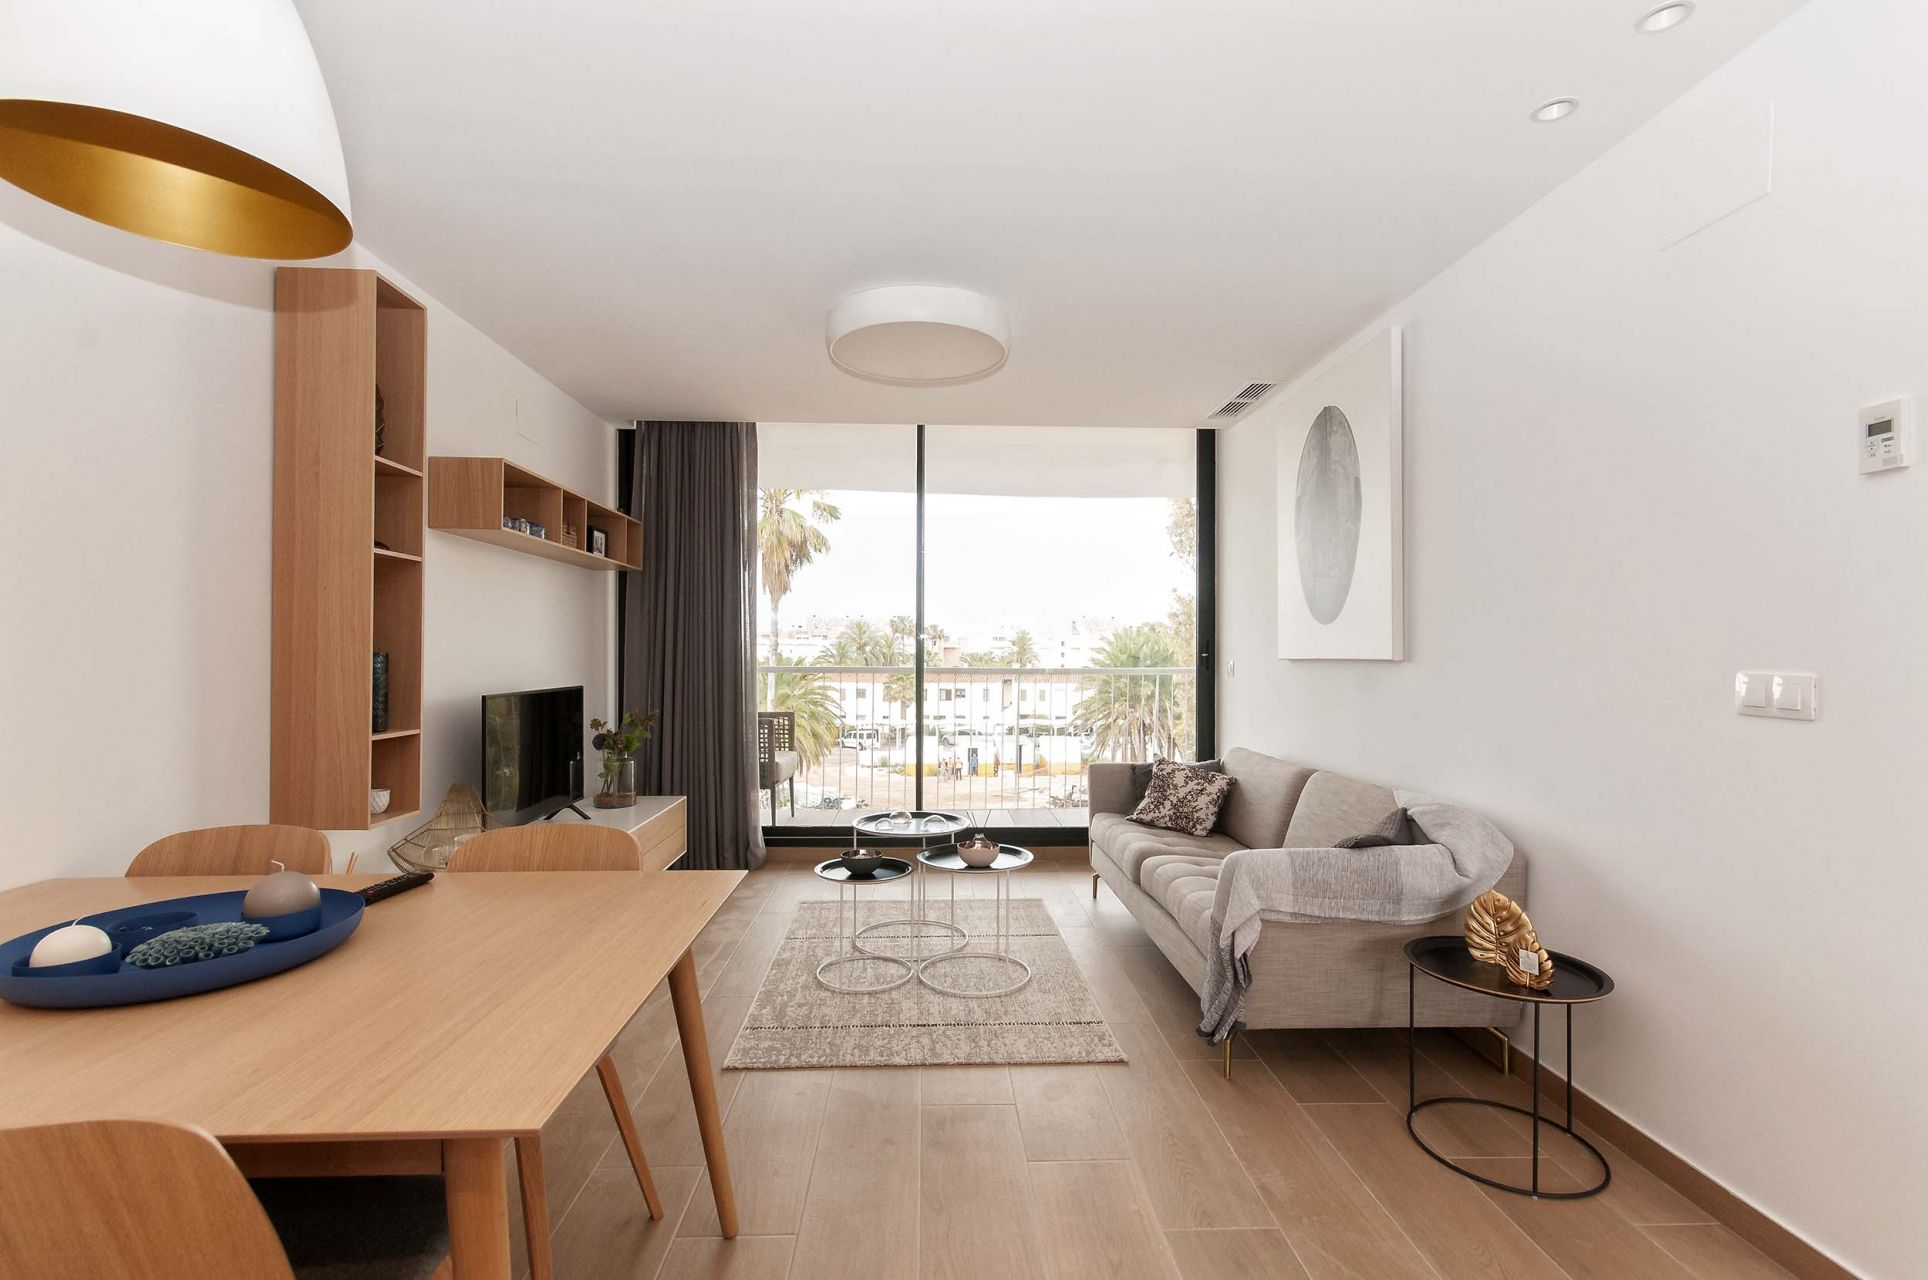 Denia Beach - 1, 2 and 3 bedroom apartments with terrace overlooking the sea or with views over the Montgó mountain, at the beach of La Almadraba beach 9